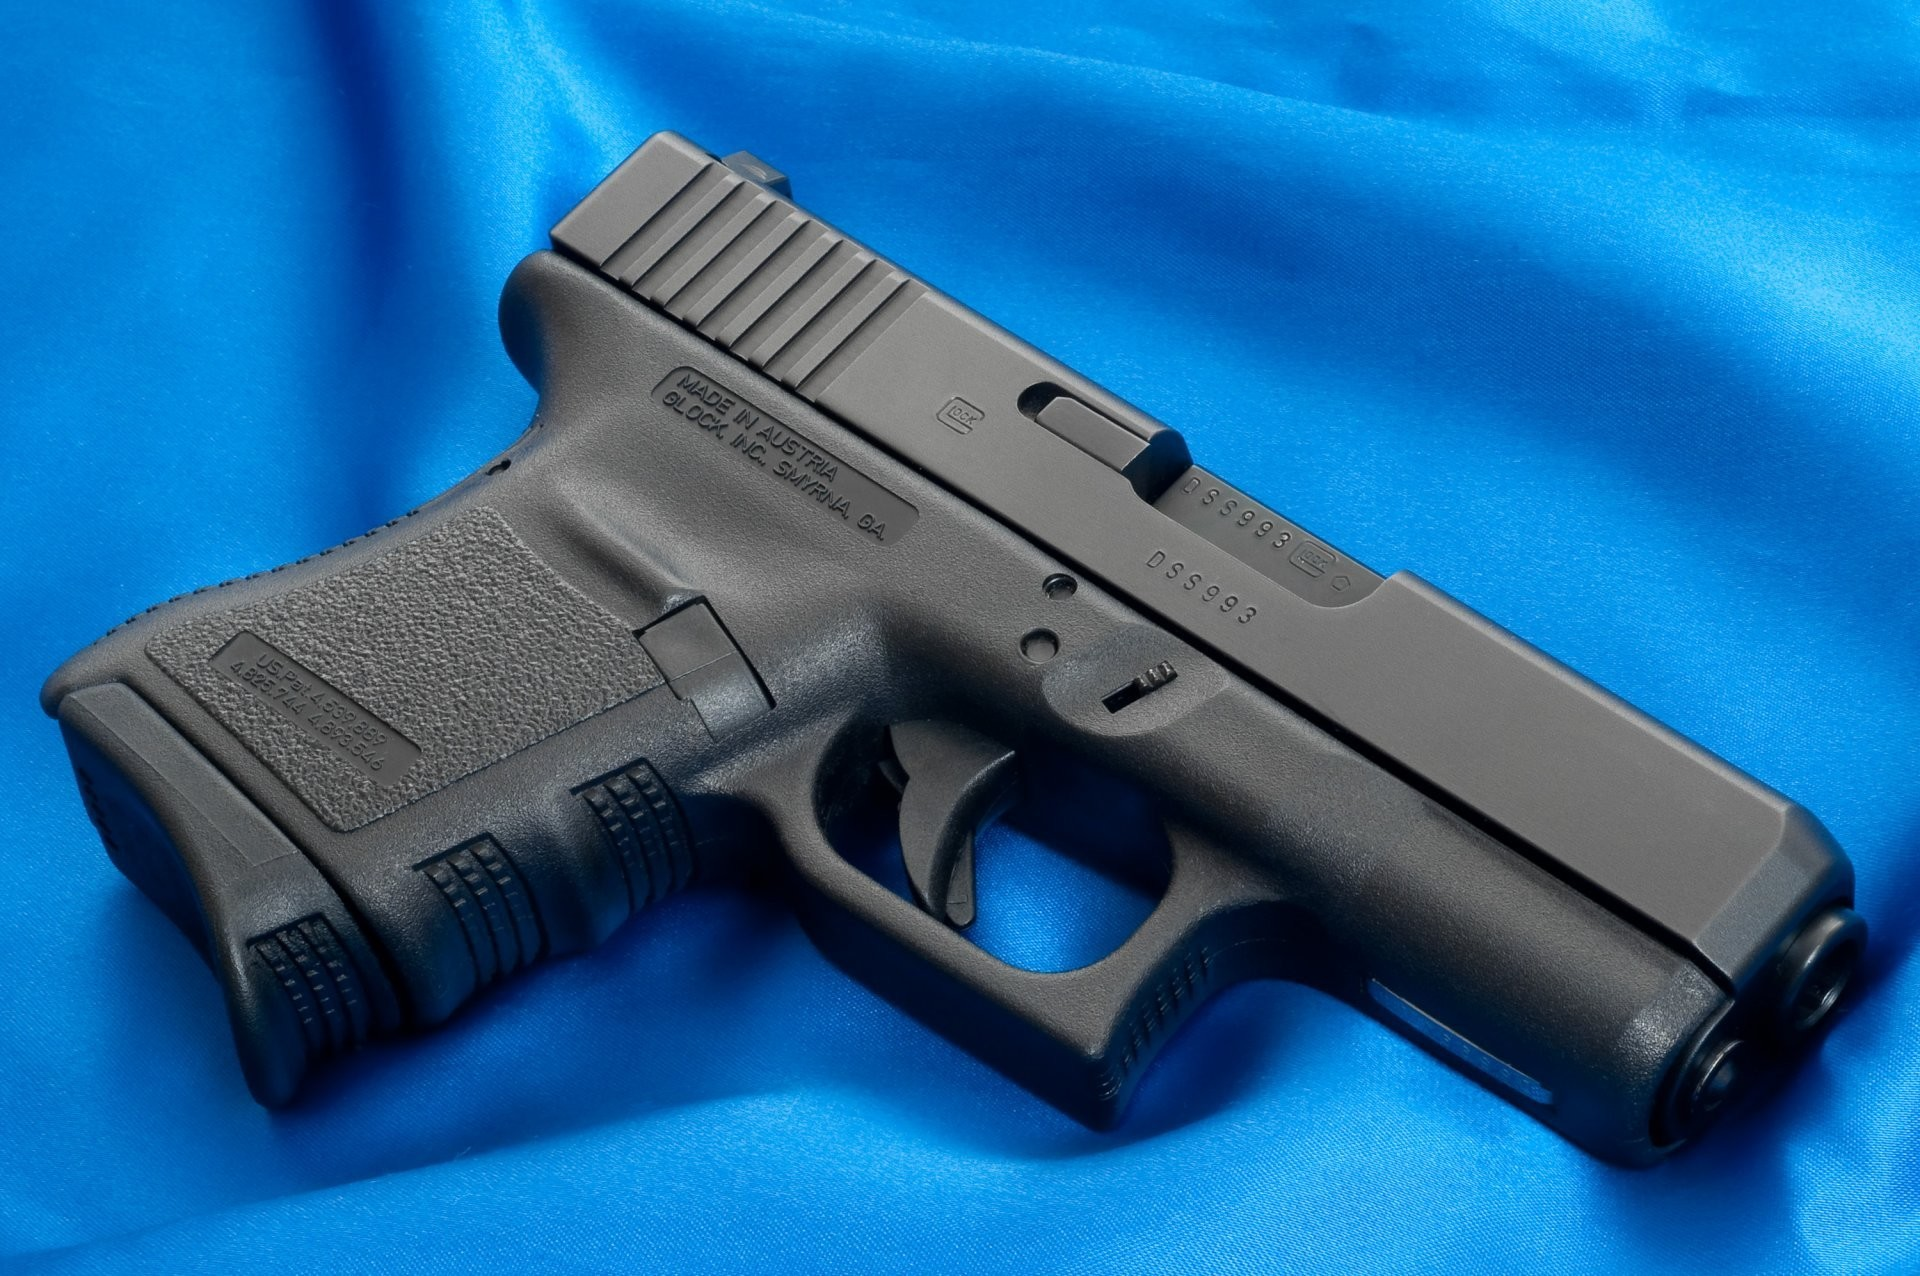 1920x1276 glock weapons wallpapers glock gun weapon wallpaper canvas blue cloth  background